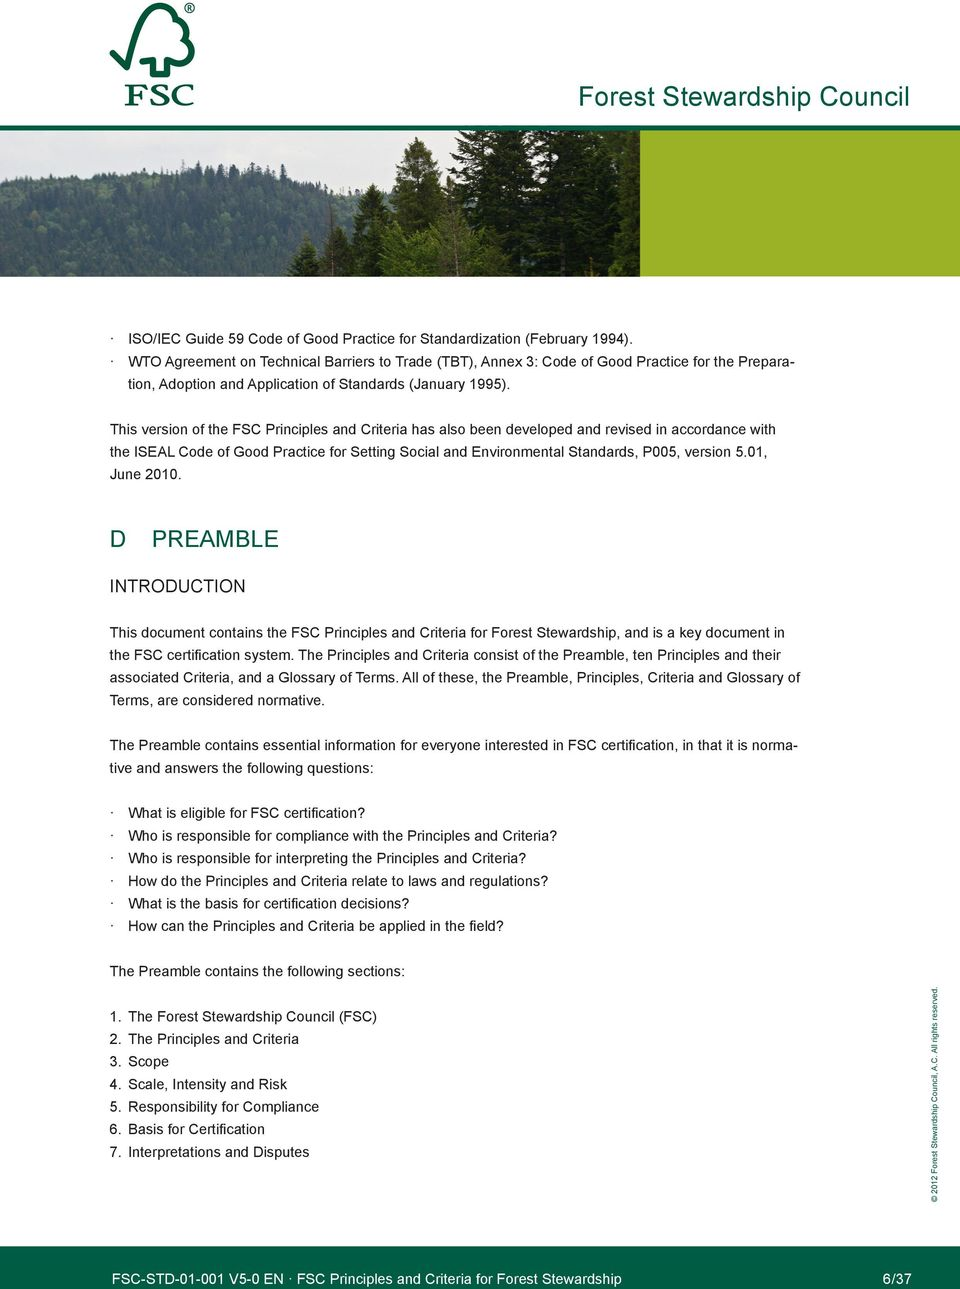 01, June 2010. d PreaMble IntroduCtIon this document contains the FSC Principles and Criteria for Forest Stewardship, and is a key document in associated Criteria, and a Glossary of terms.